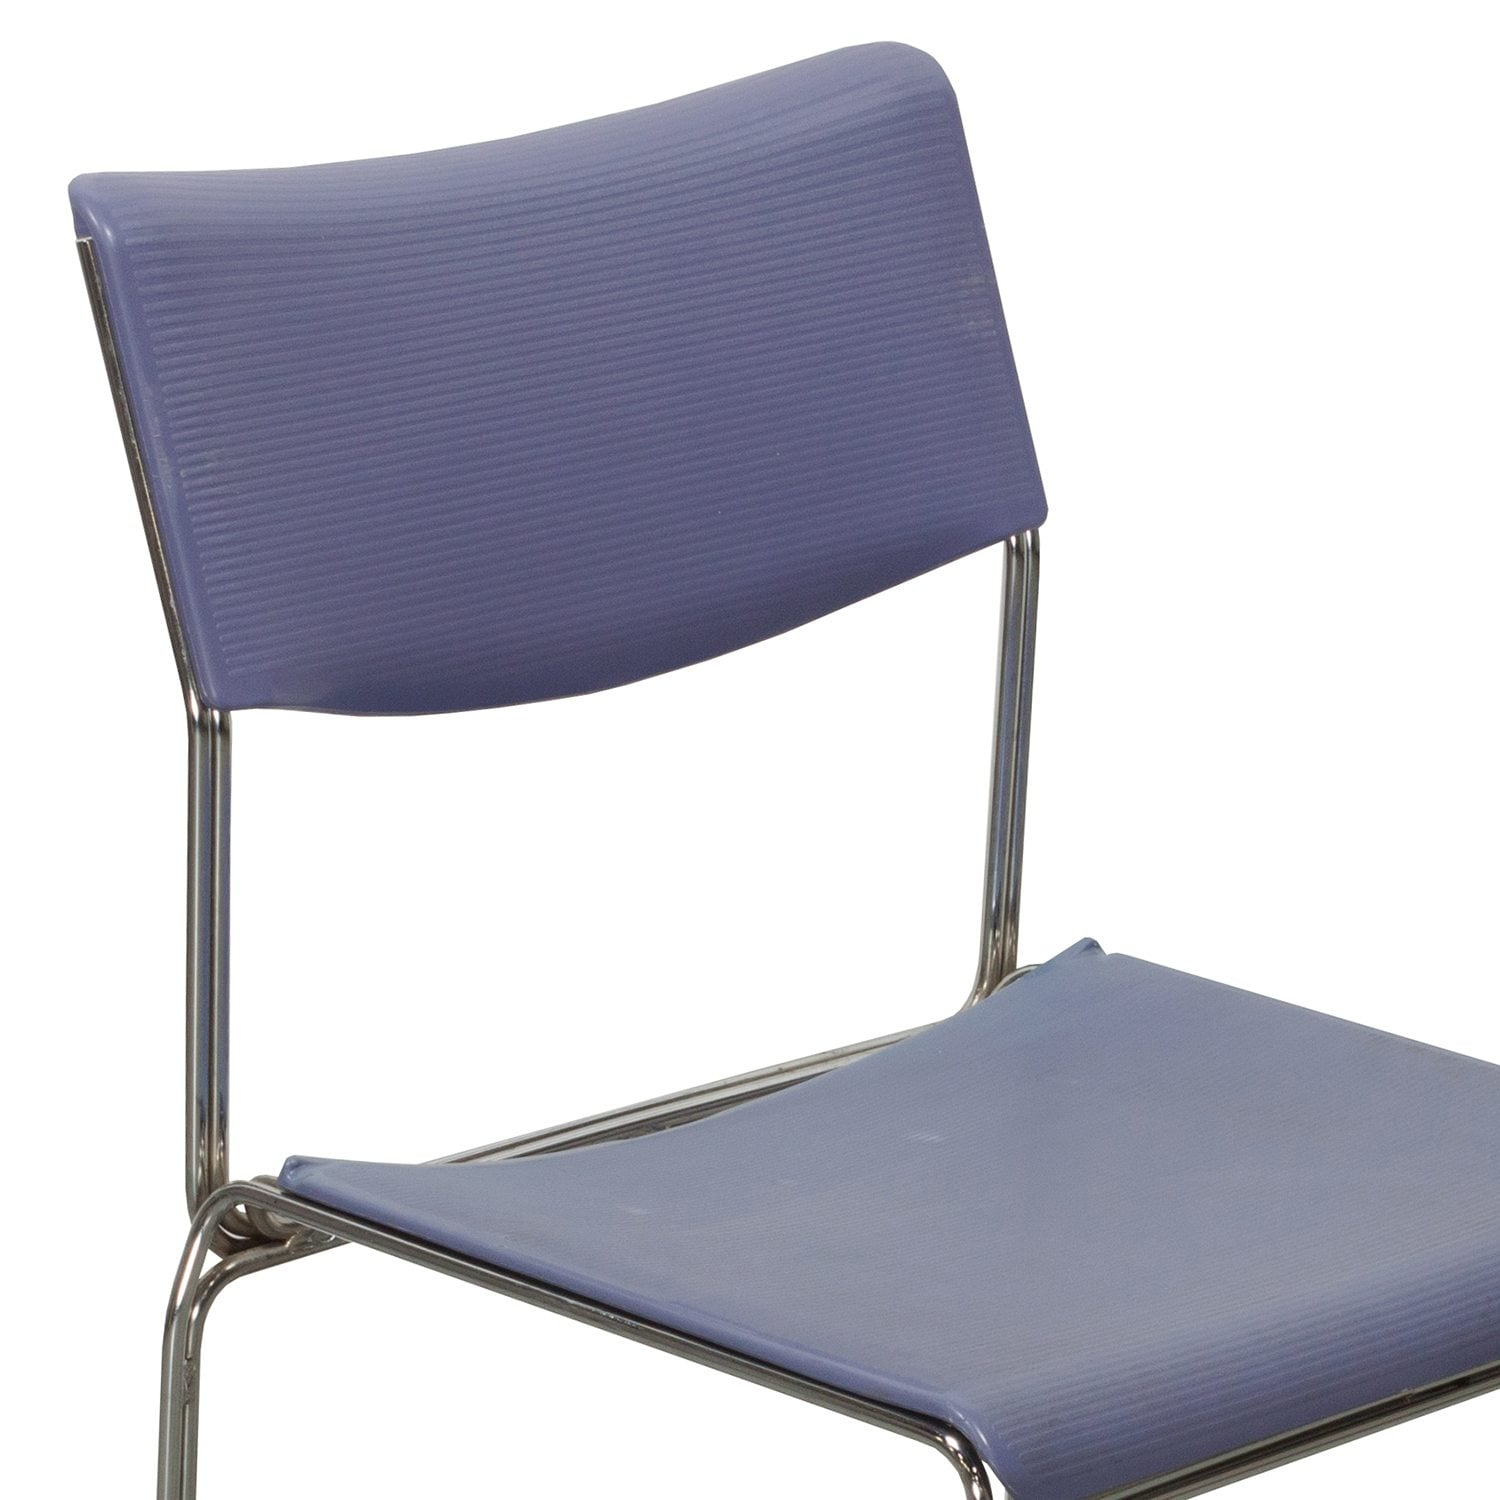 Lavender Chair Comforto Used Stack Chair Lavender National Office